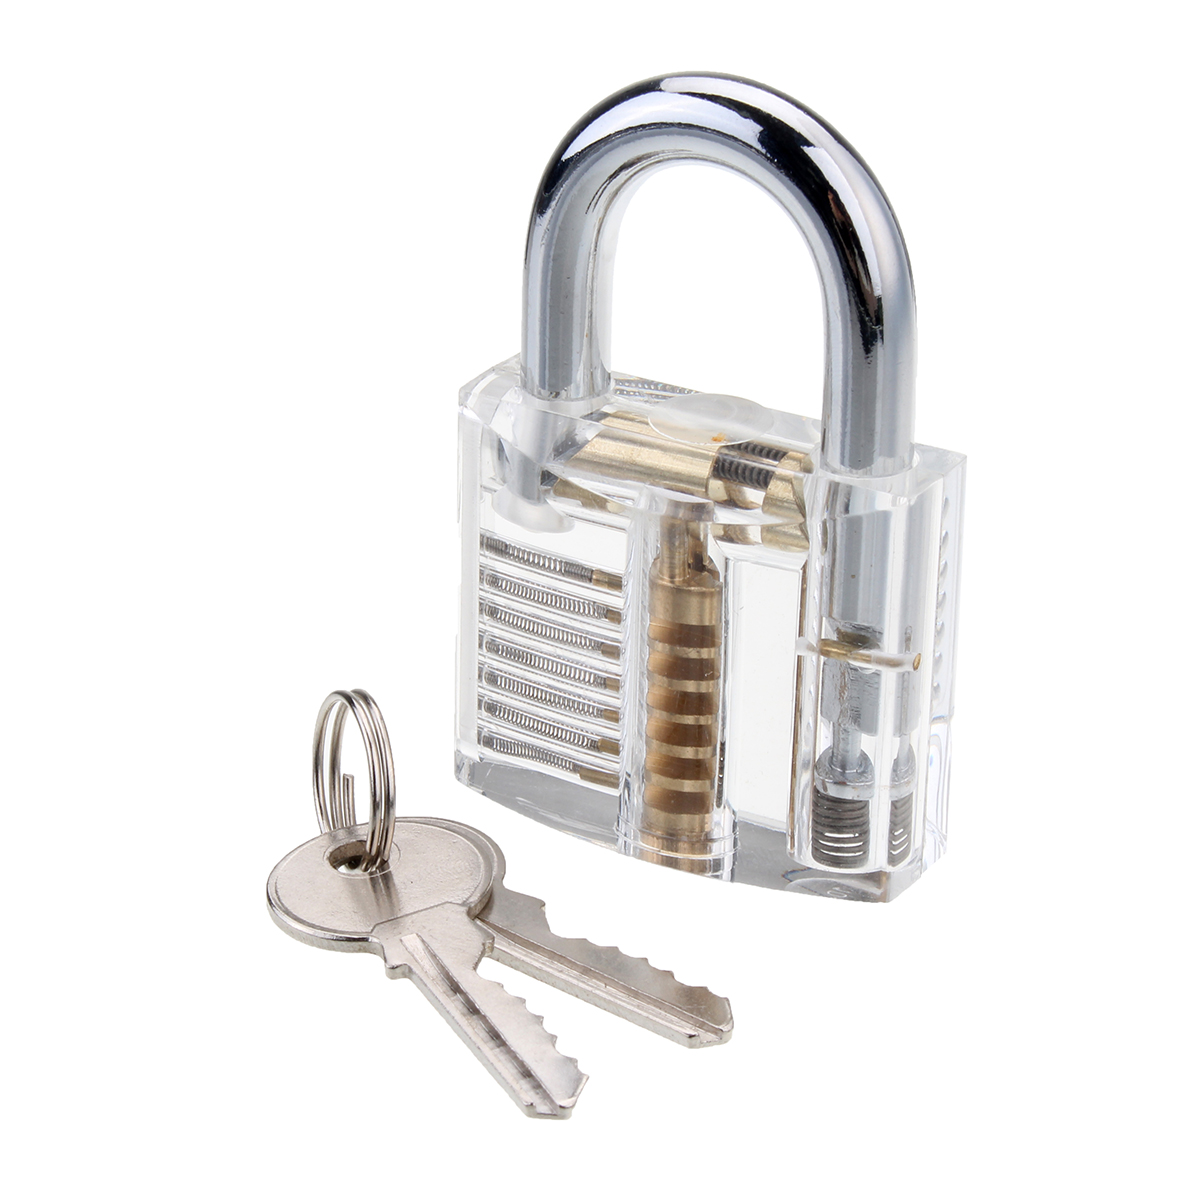 26pcs Lock Pick Training Tool W/ Clear Transparent Practice Padlock Set Locksmith